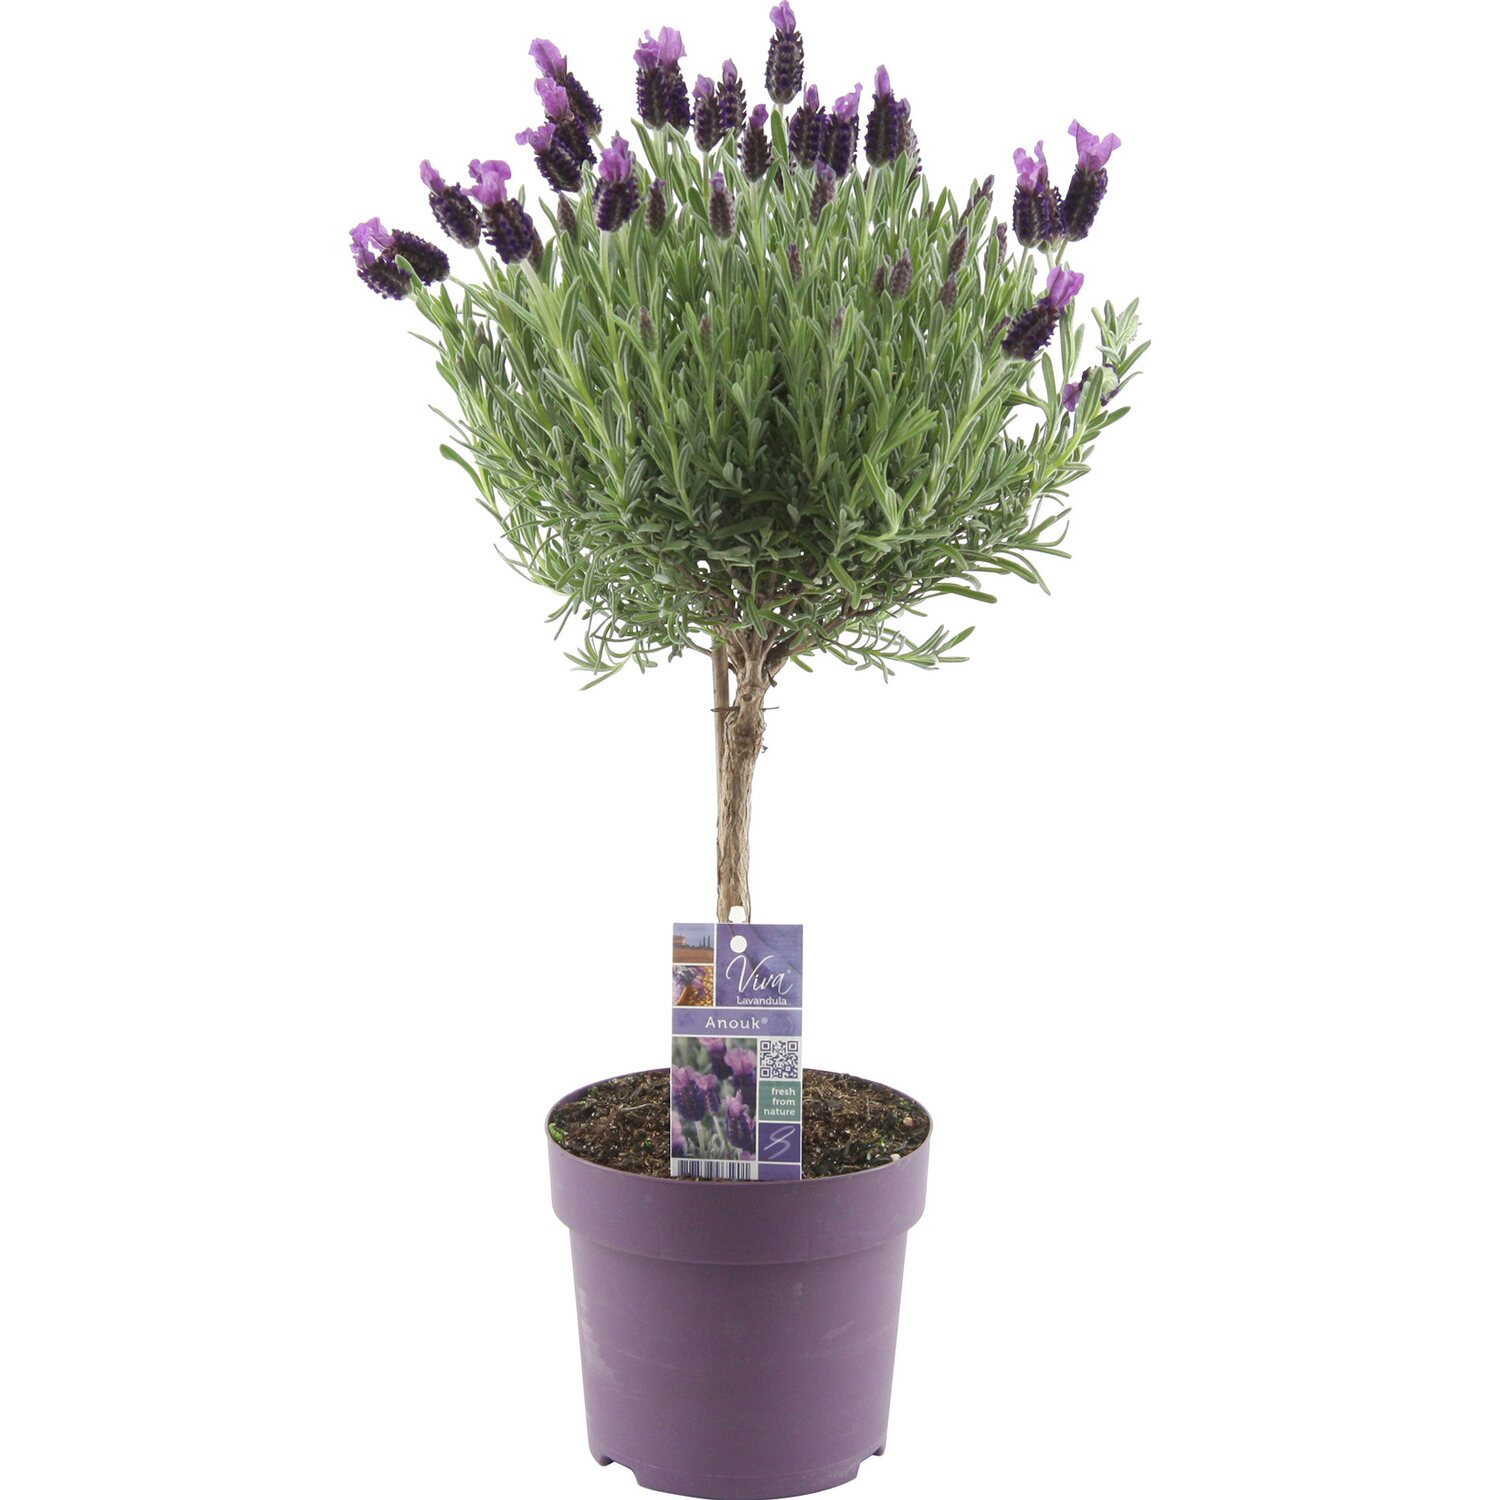 obi lavendel anouk auf stamm topf ca 15 cm lavandula. Black Bedroom Furniture Sets. Home Design Ideas